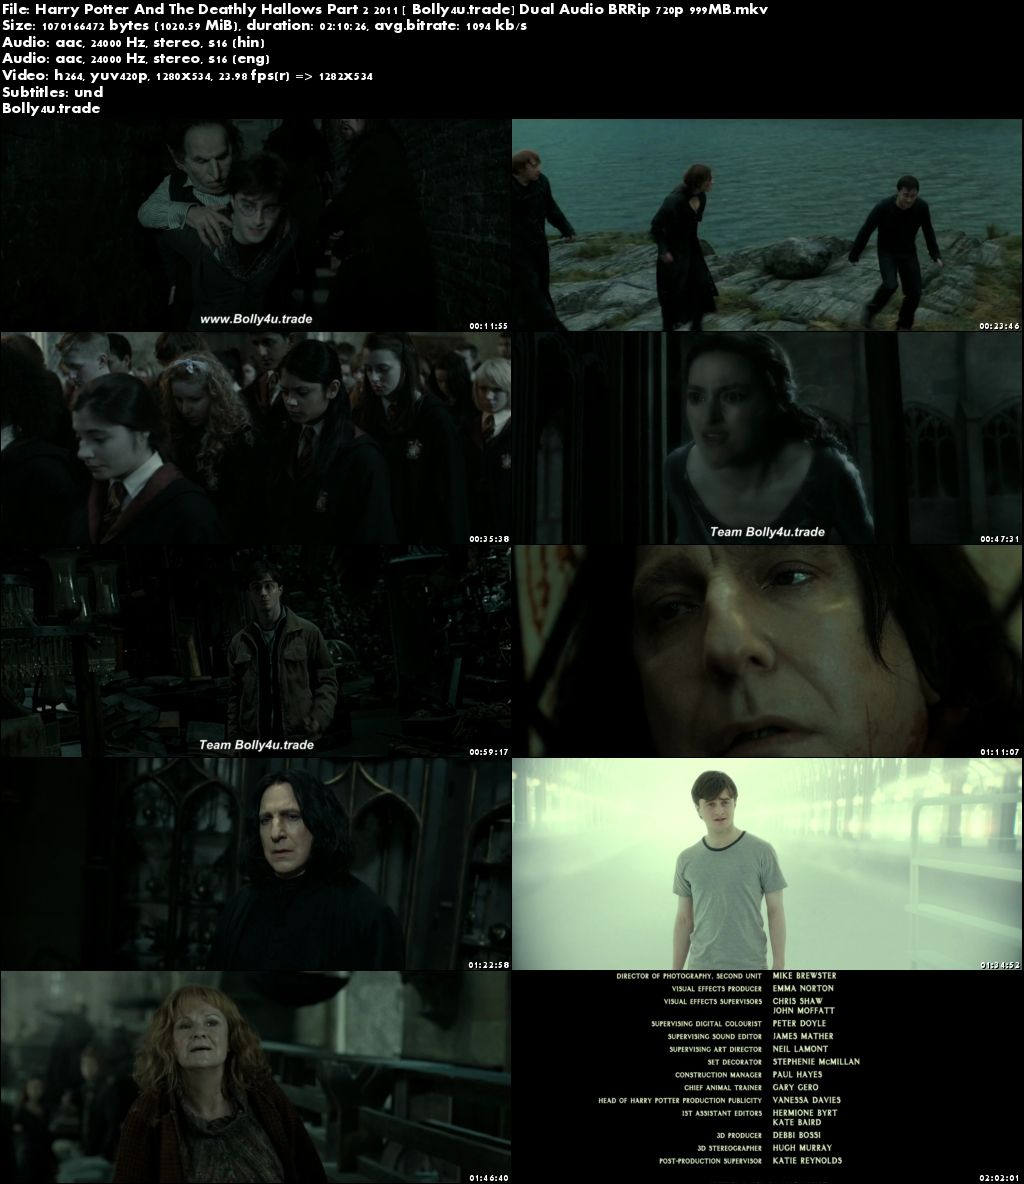 Harry Potter And The Deathly Hallows Part 2 2011 BRRip 999Mb Hindi Dual Audio 720p Download